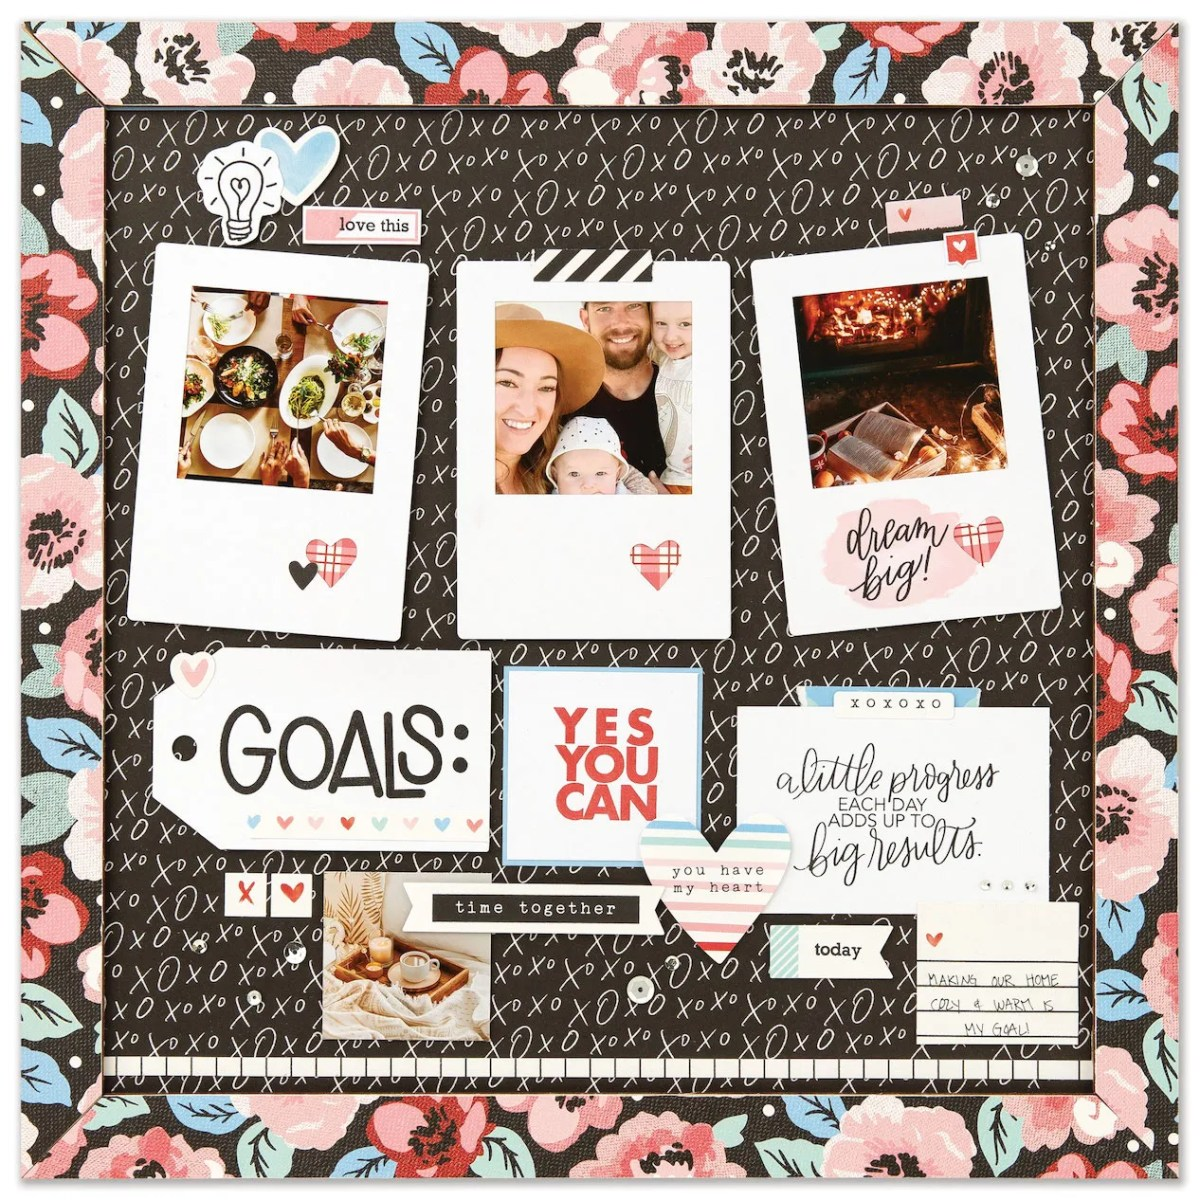 Vision Boards for Intentional Living #ctmh #closetomyheart #ctmhhomesweethome #visionboards #goals #inspiration #newyeargoals #makeithappen